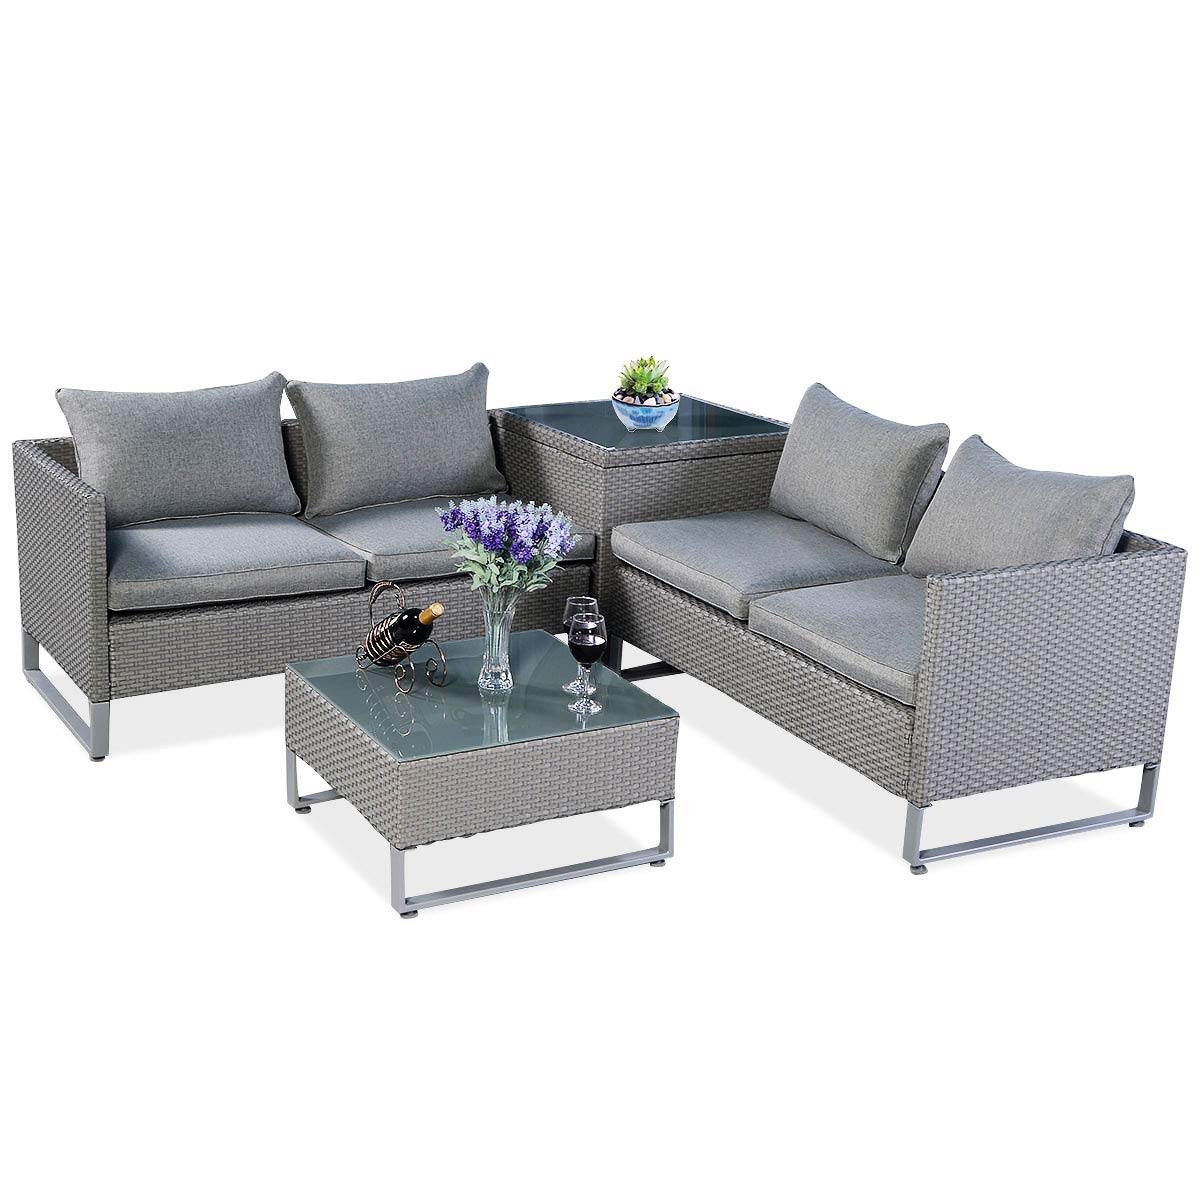 Tangkula-4-Piece-Patio-Furniture-Set-Outdoor-Love-Seat-with-Storage-Conversation-Set